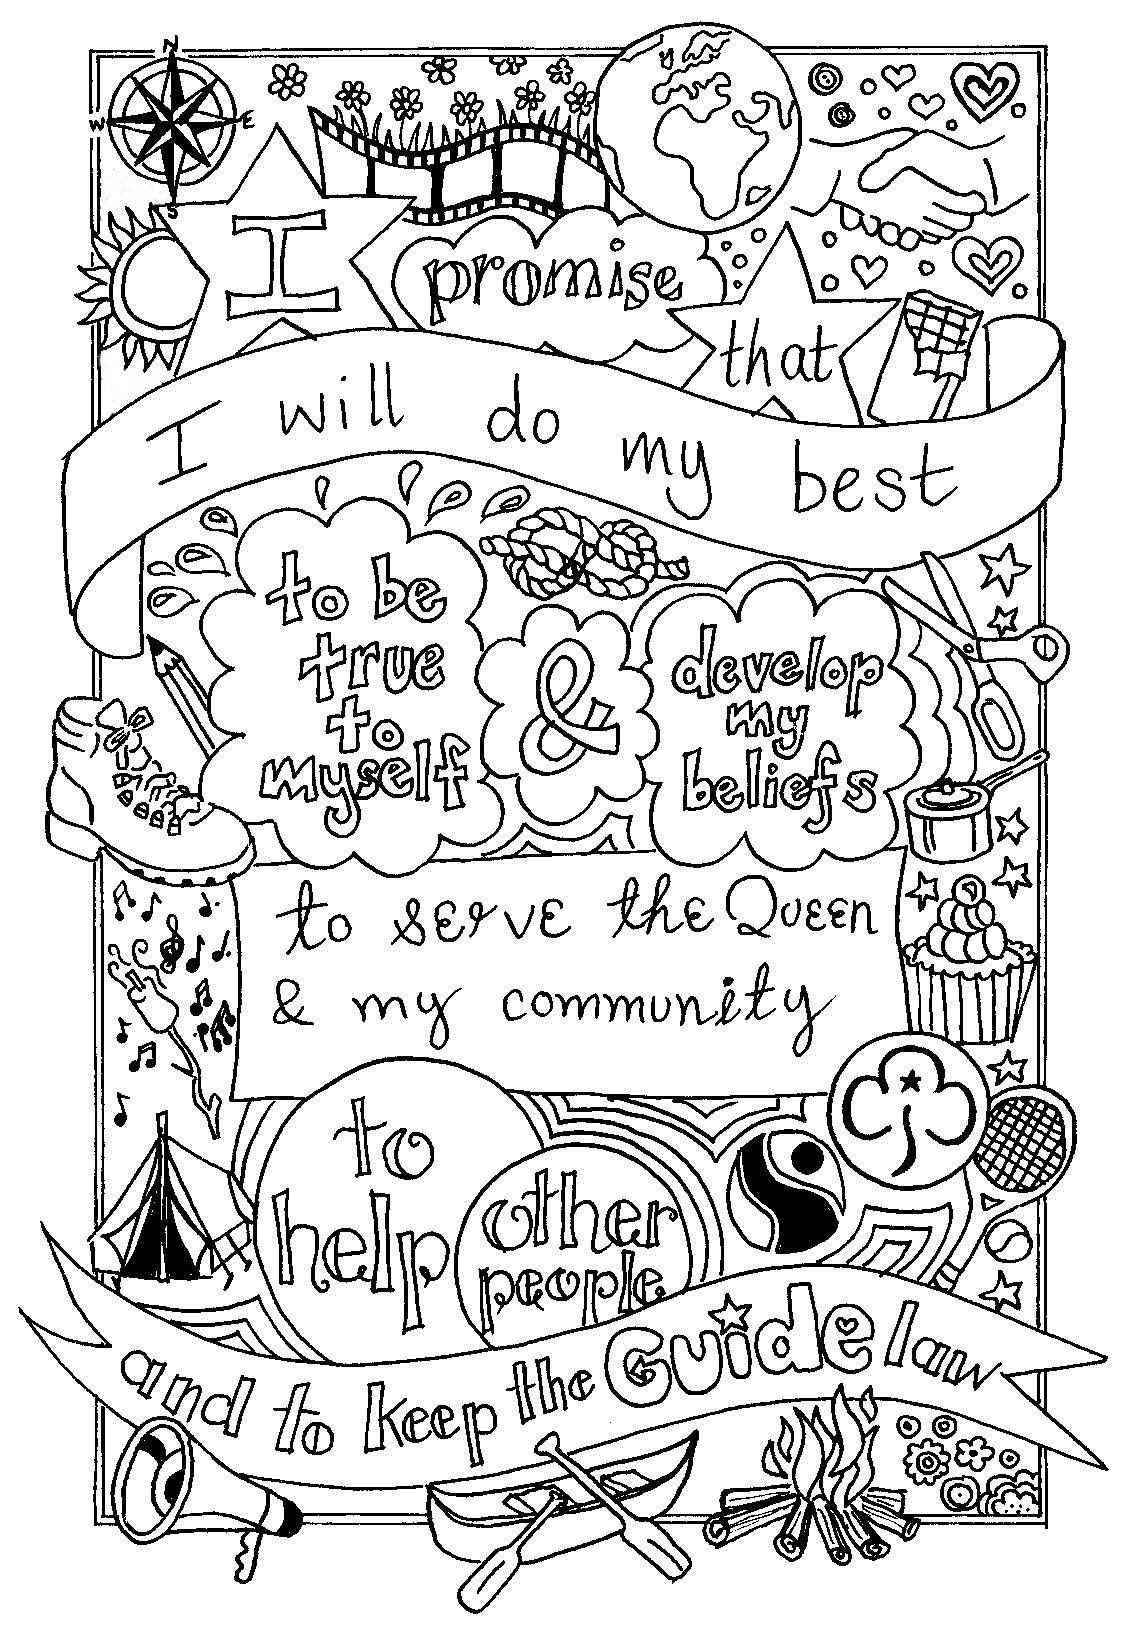 UK Guide Promise colouring sheet. Created by @emyb Emy